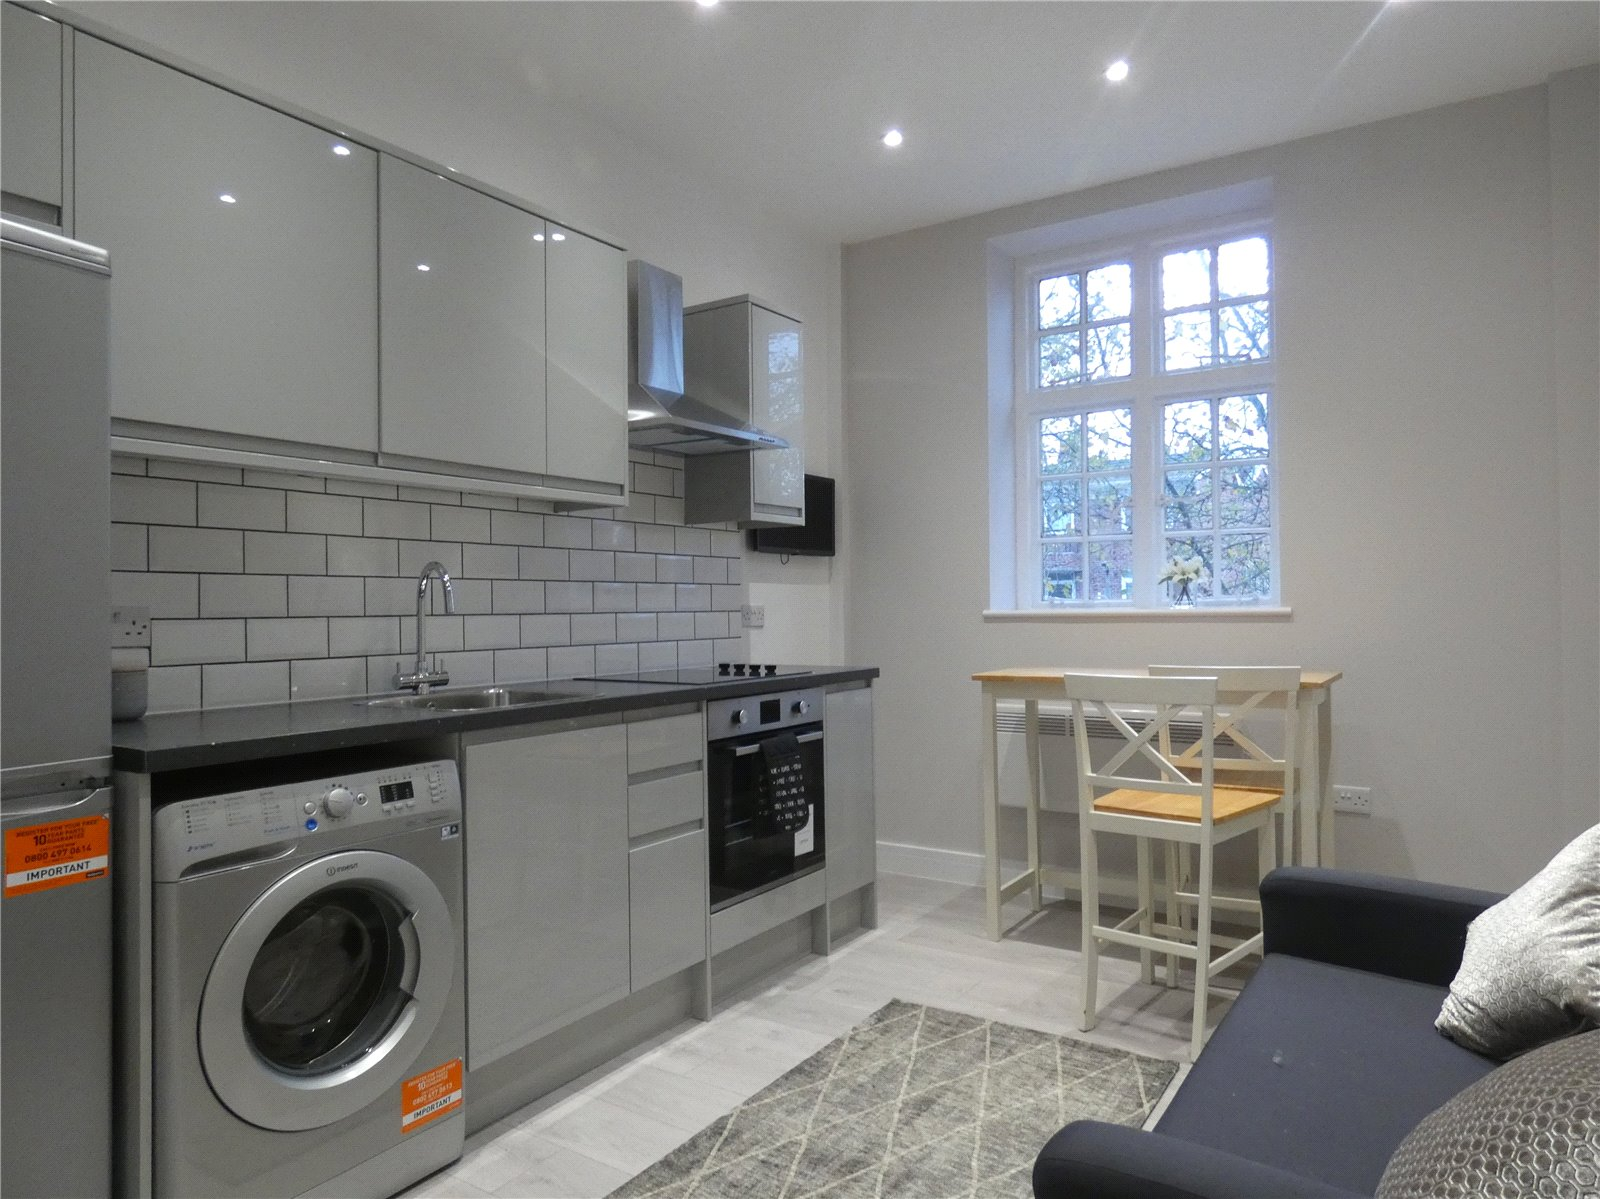 1 bed apartment to rent in Whetstone, N20 9HW 1